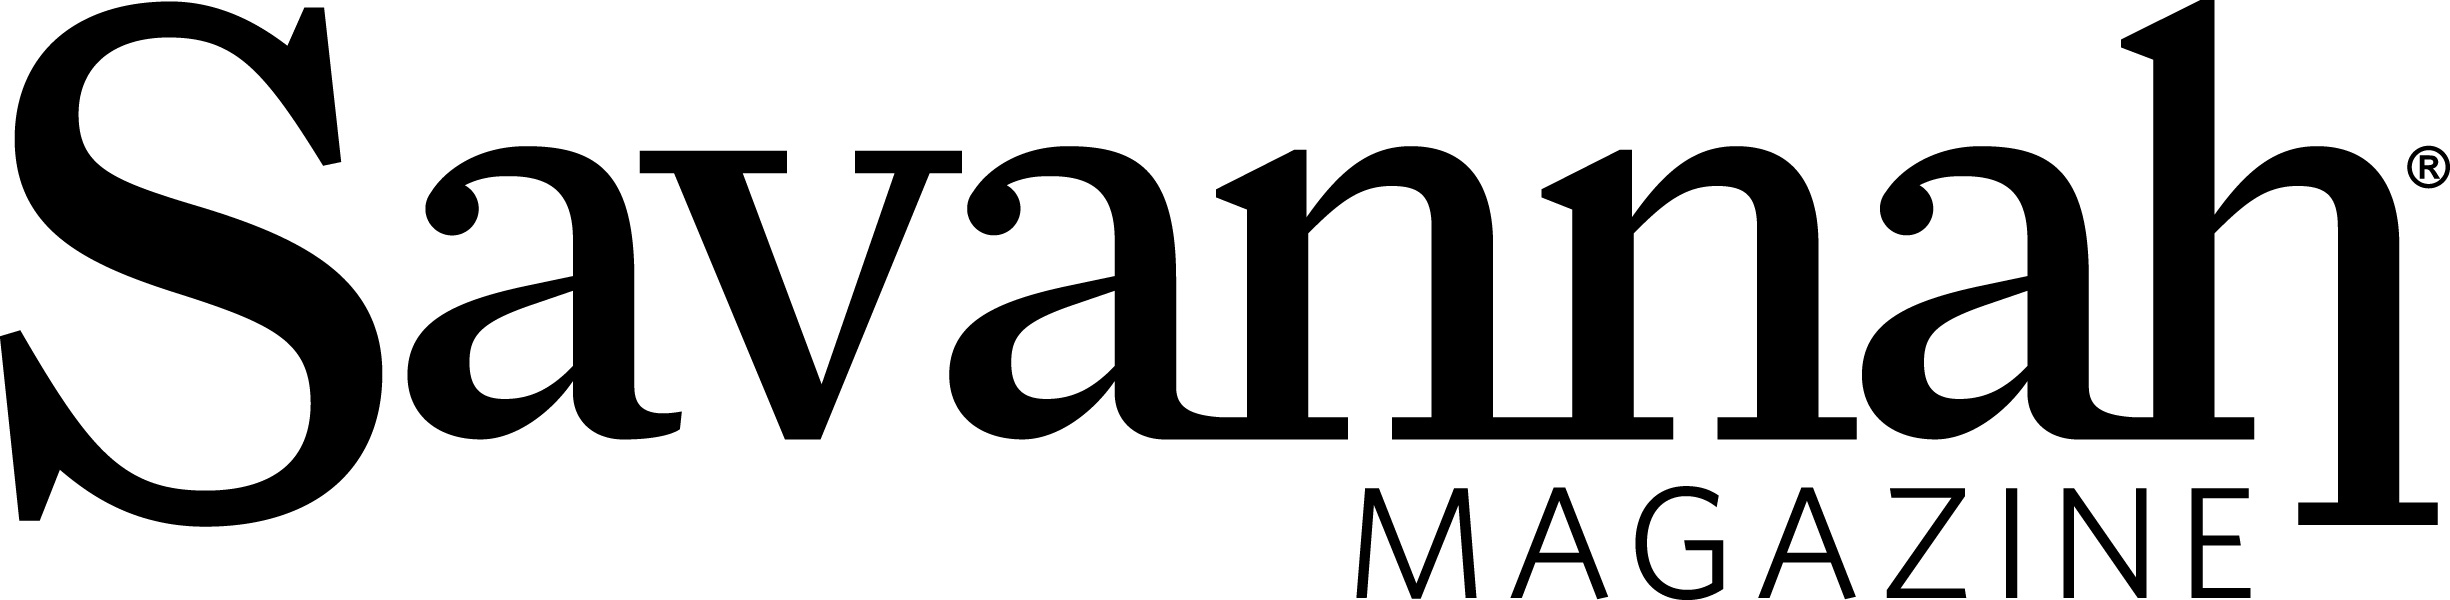 Savannah Magazine Logo